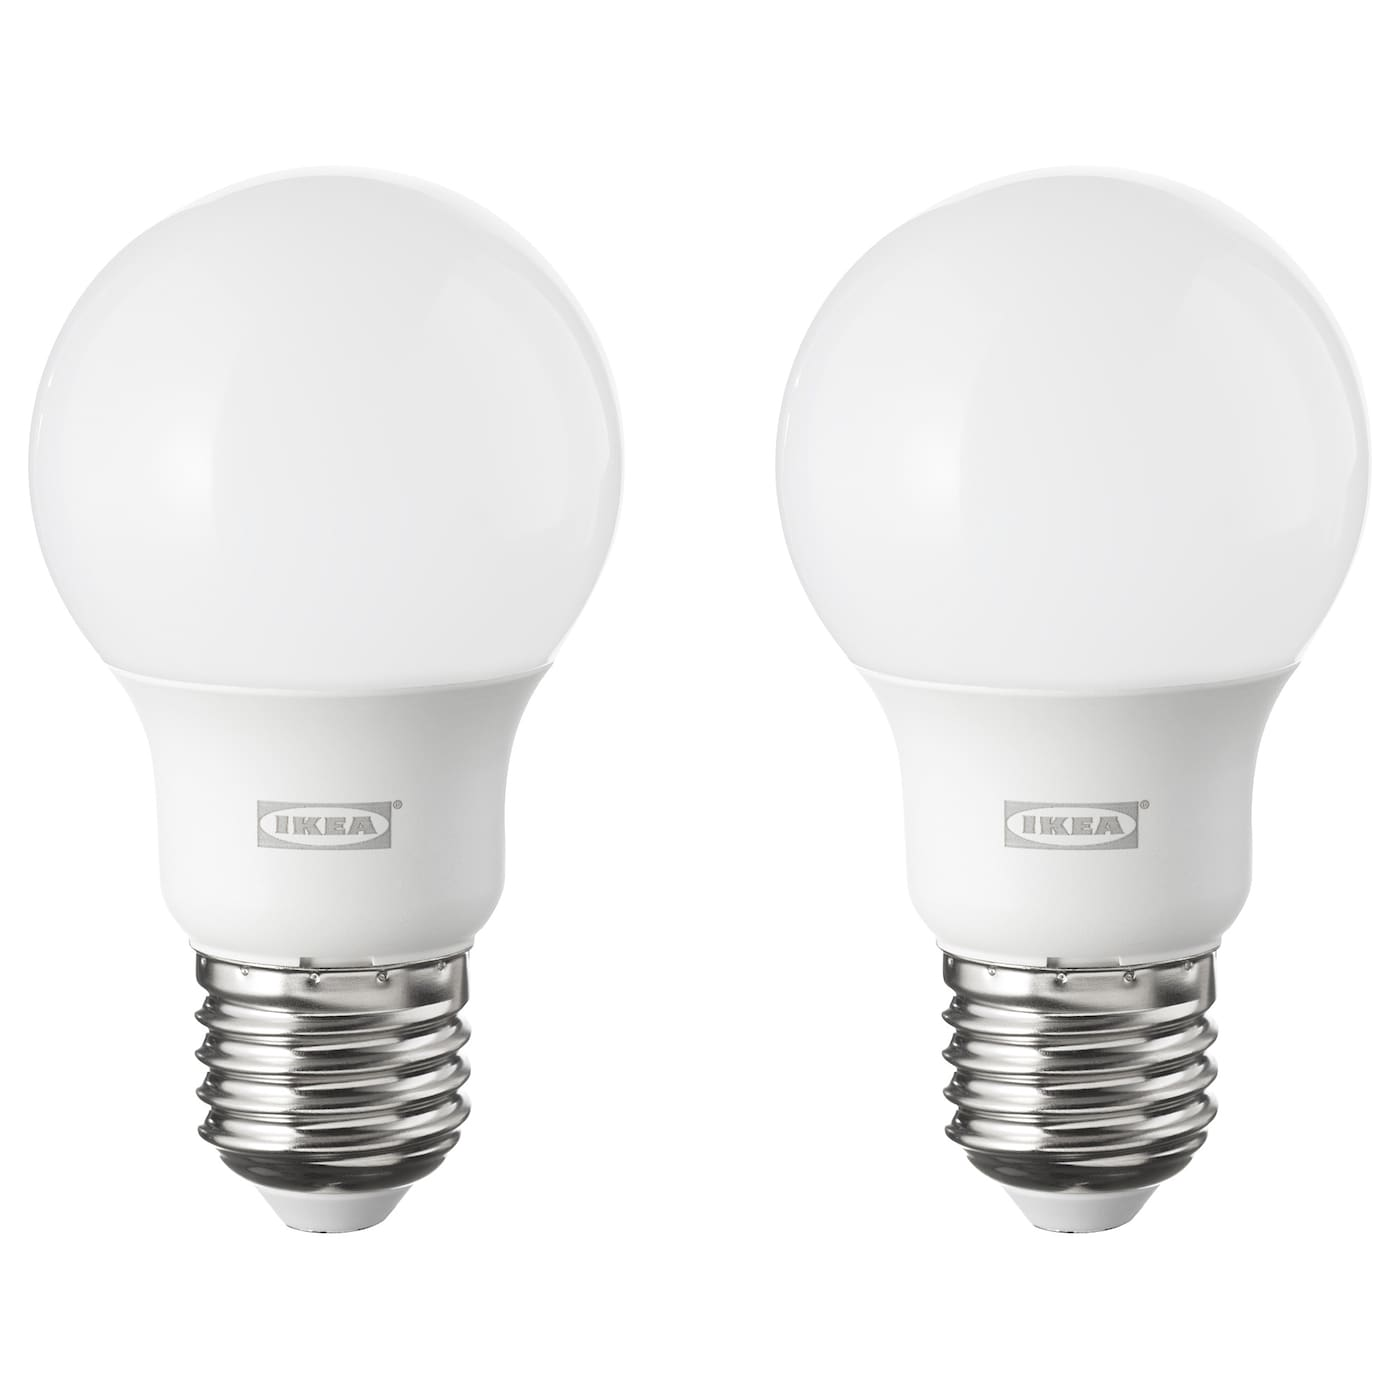 IKEA RYET led-lamp E27 600 lumen